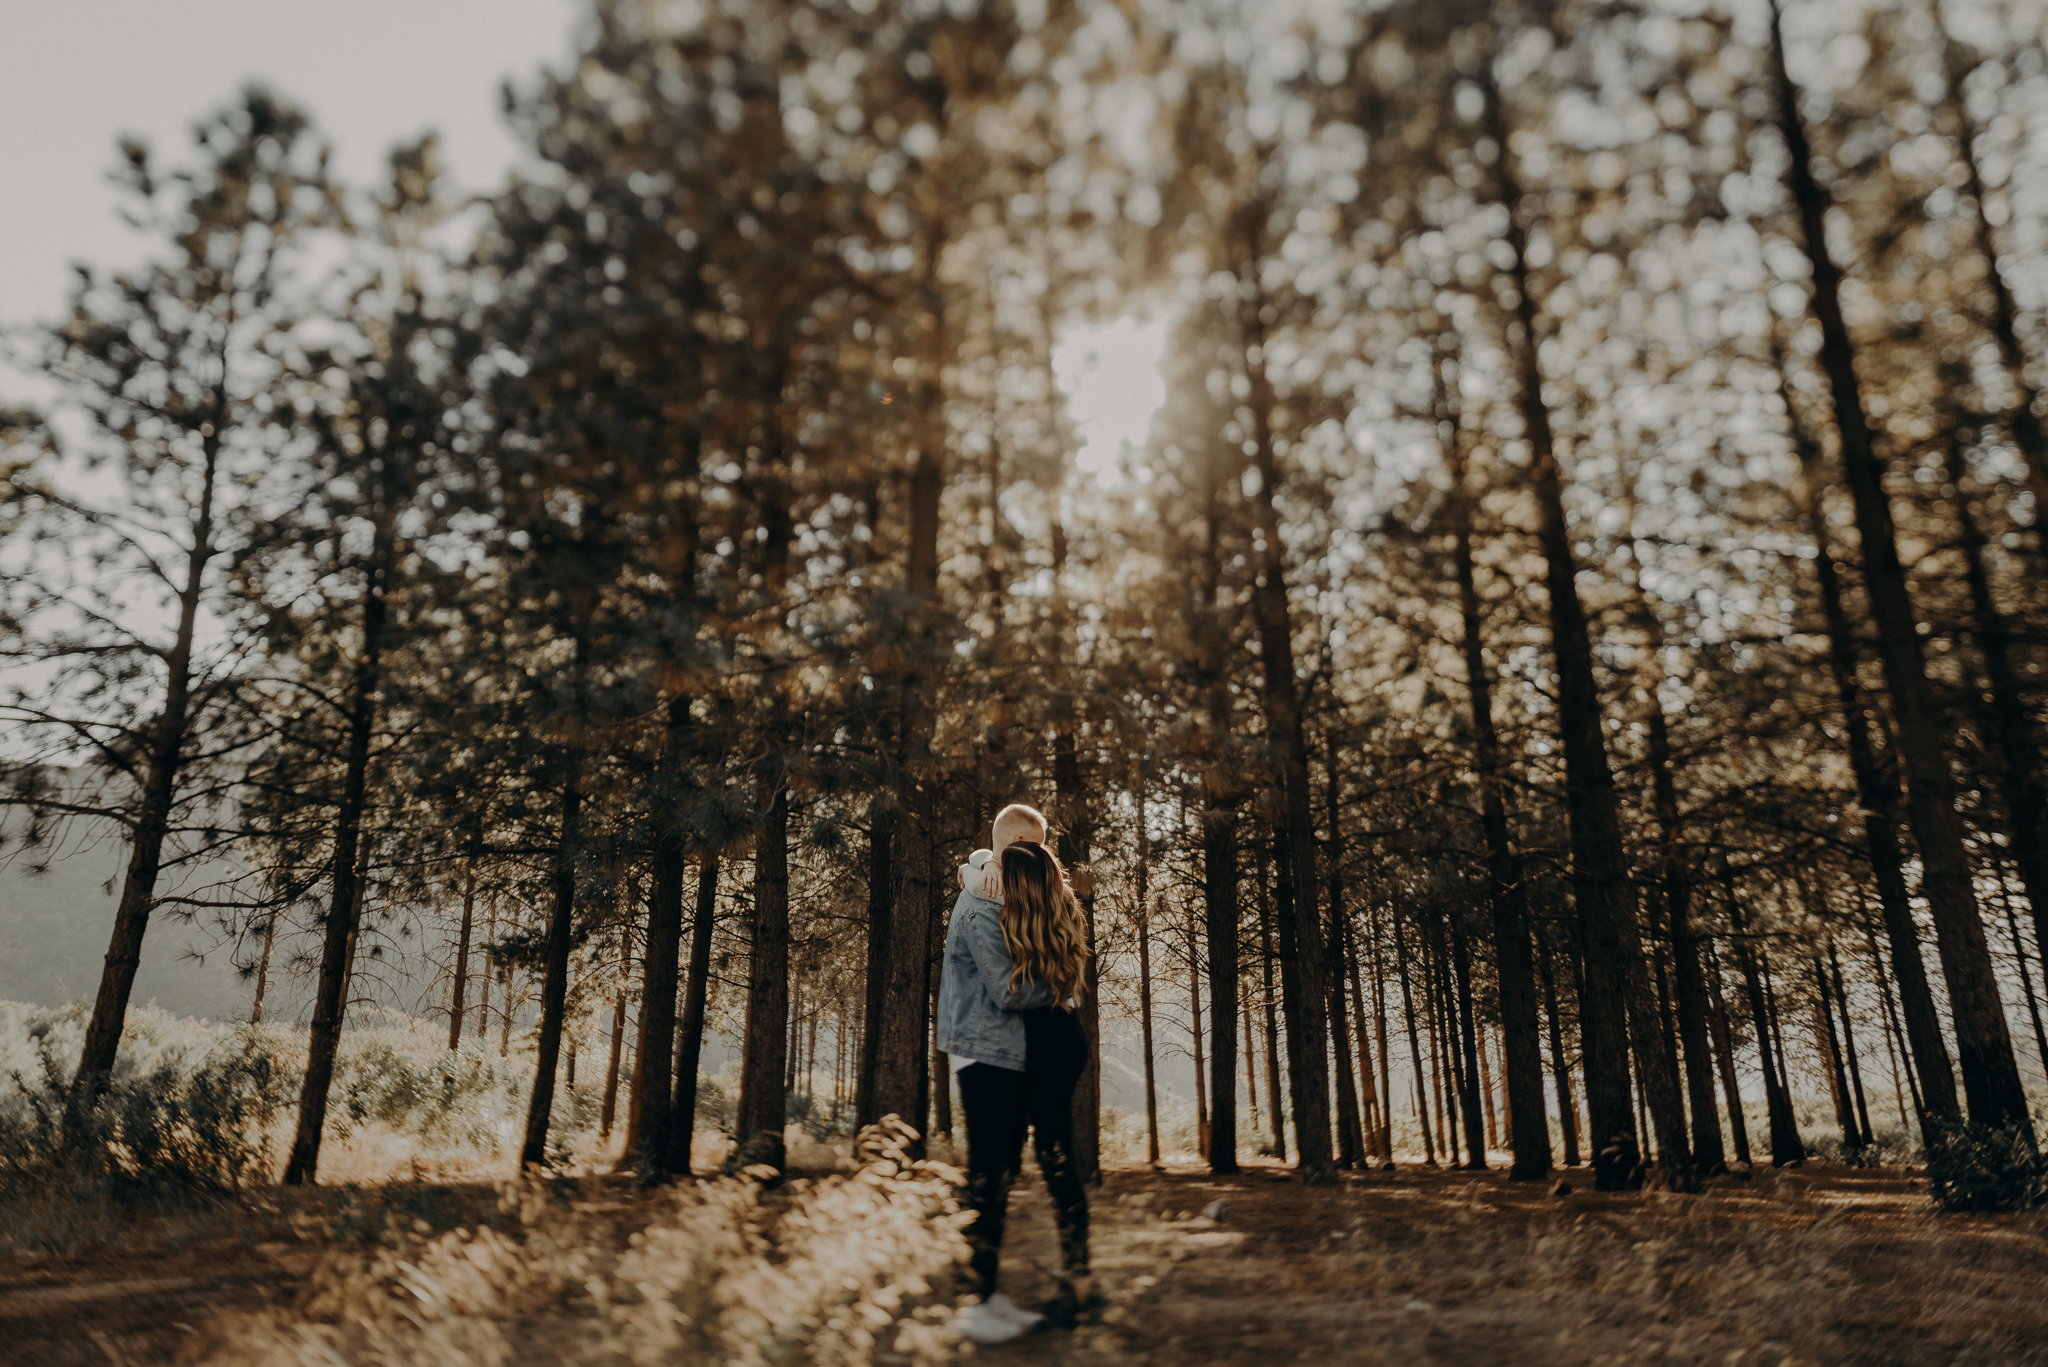 Isaiah + Taylor Photography - Los Angeles Forest Engagement, Laid-back Wedding Photographer-025.jpg